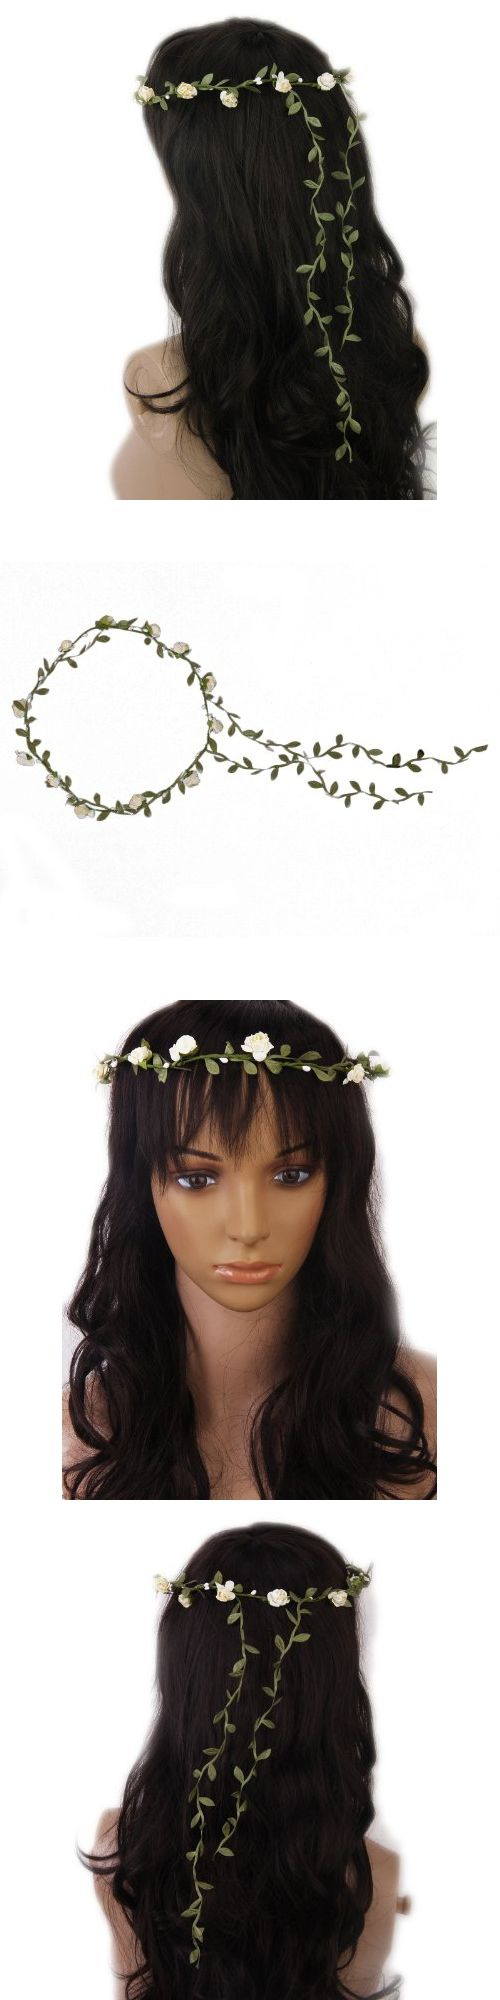 Flowers Branch Festival Wedding Garland Head Wreath Crown Floral Halo Headpiece Photography Tool Adult Size